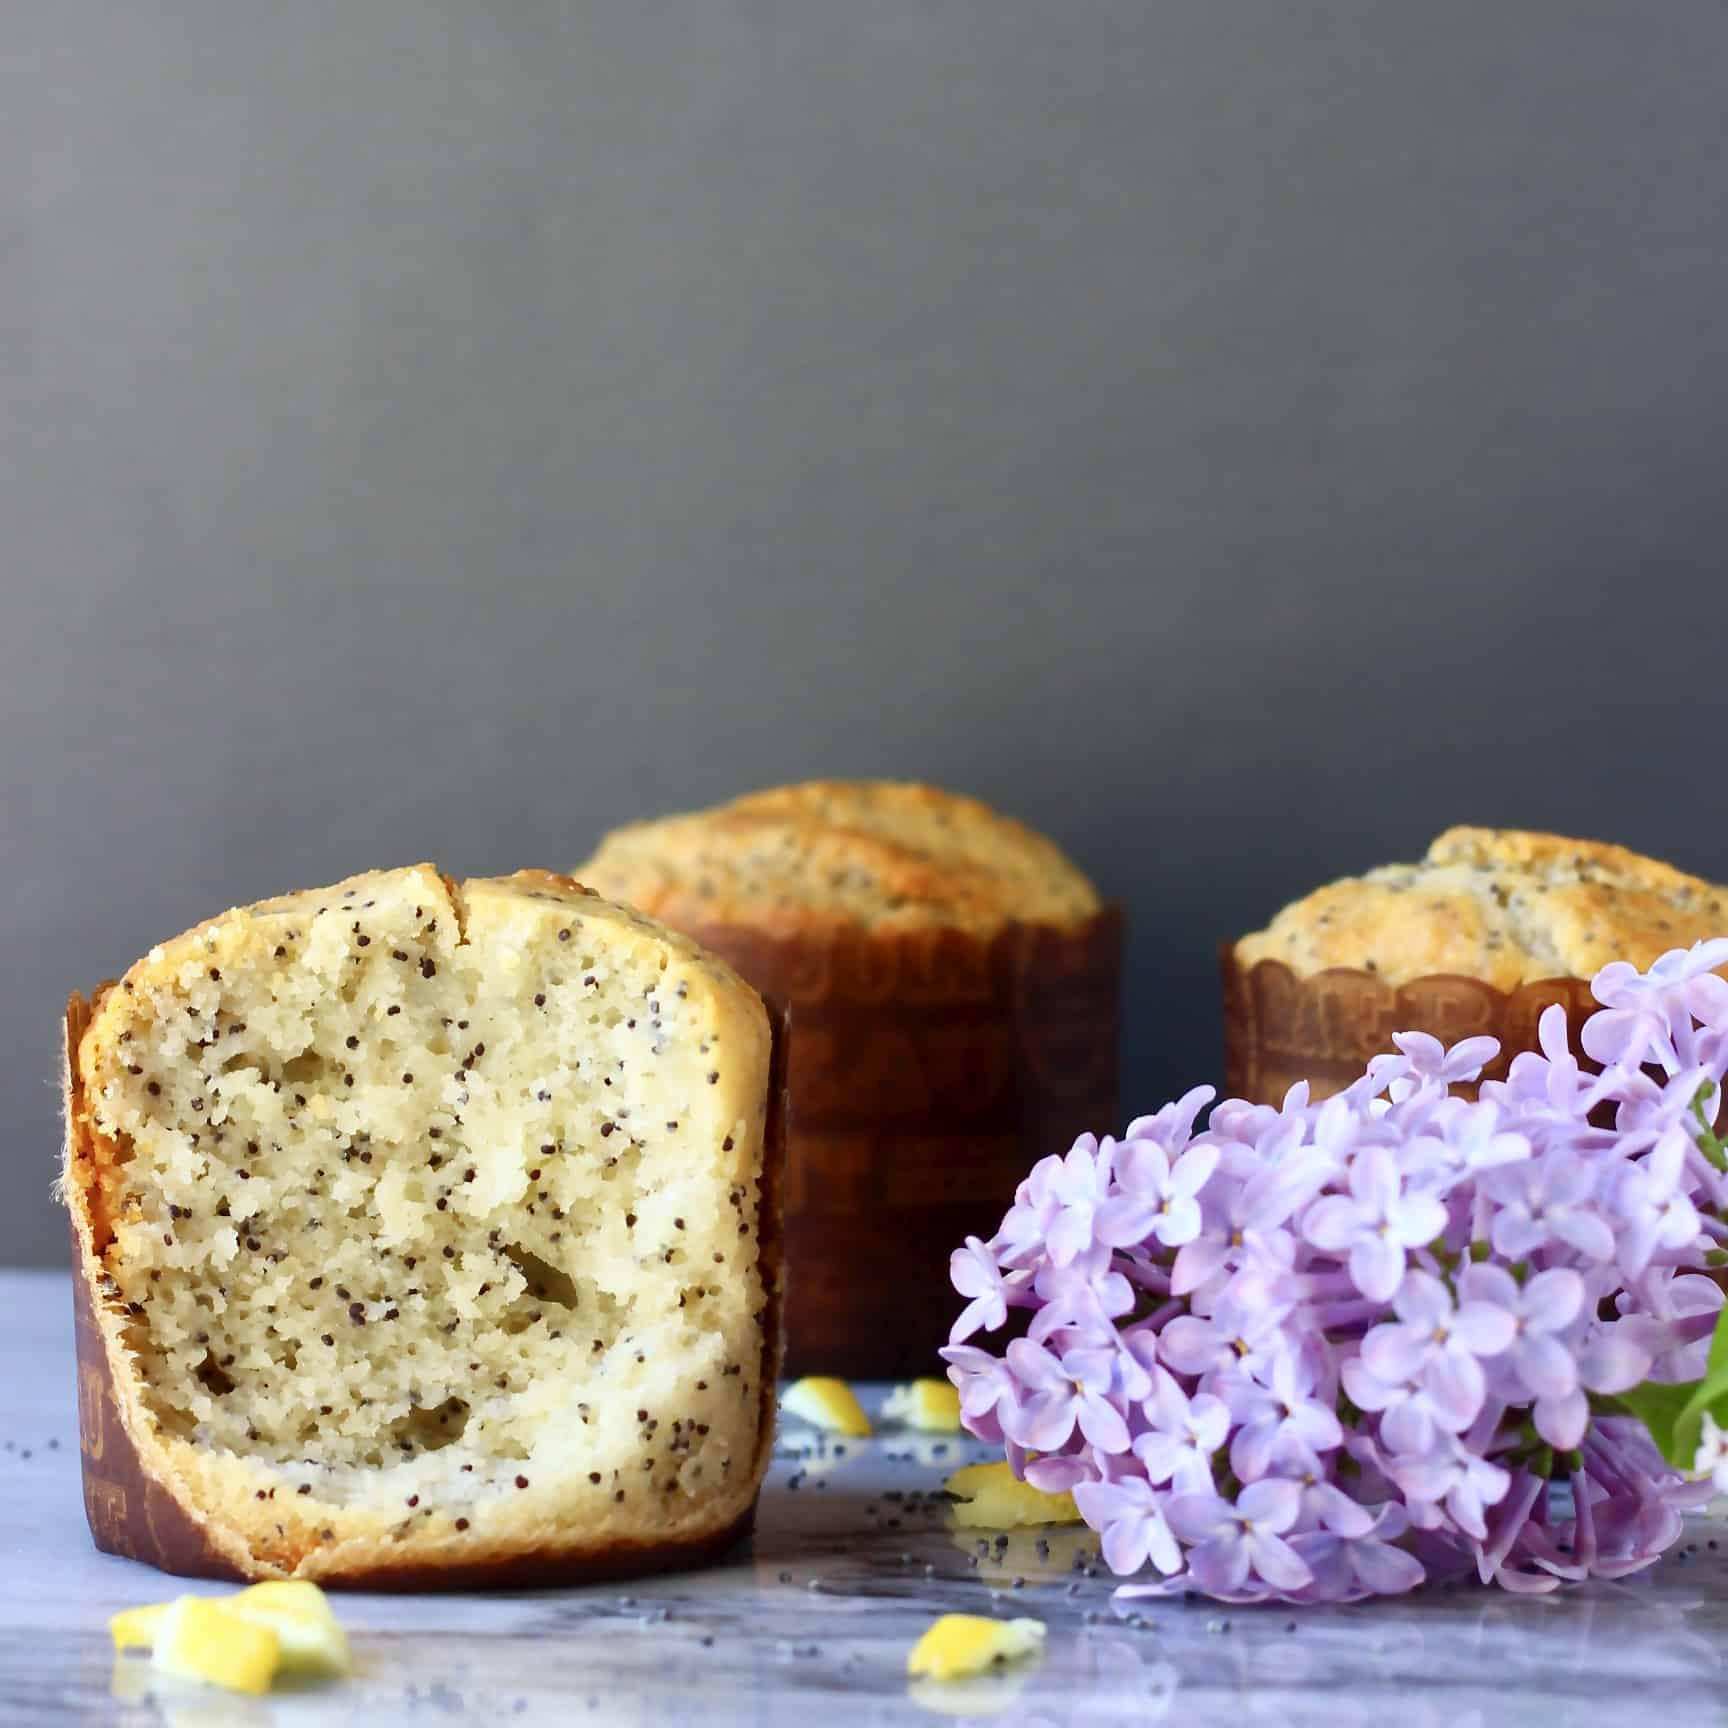 Three lemon poppy seed muffins with a lilac flower on a marble slab against a grey background